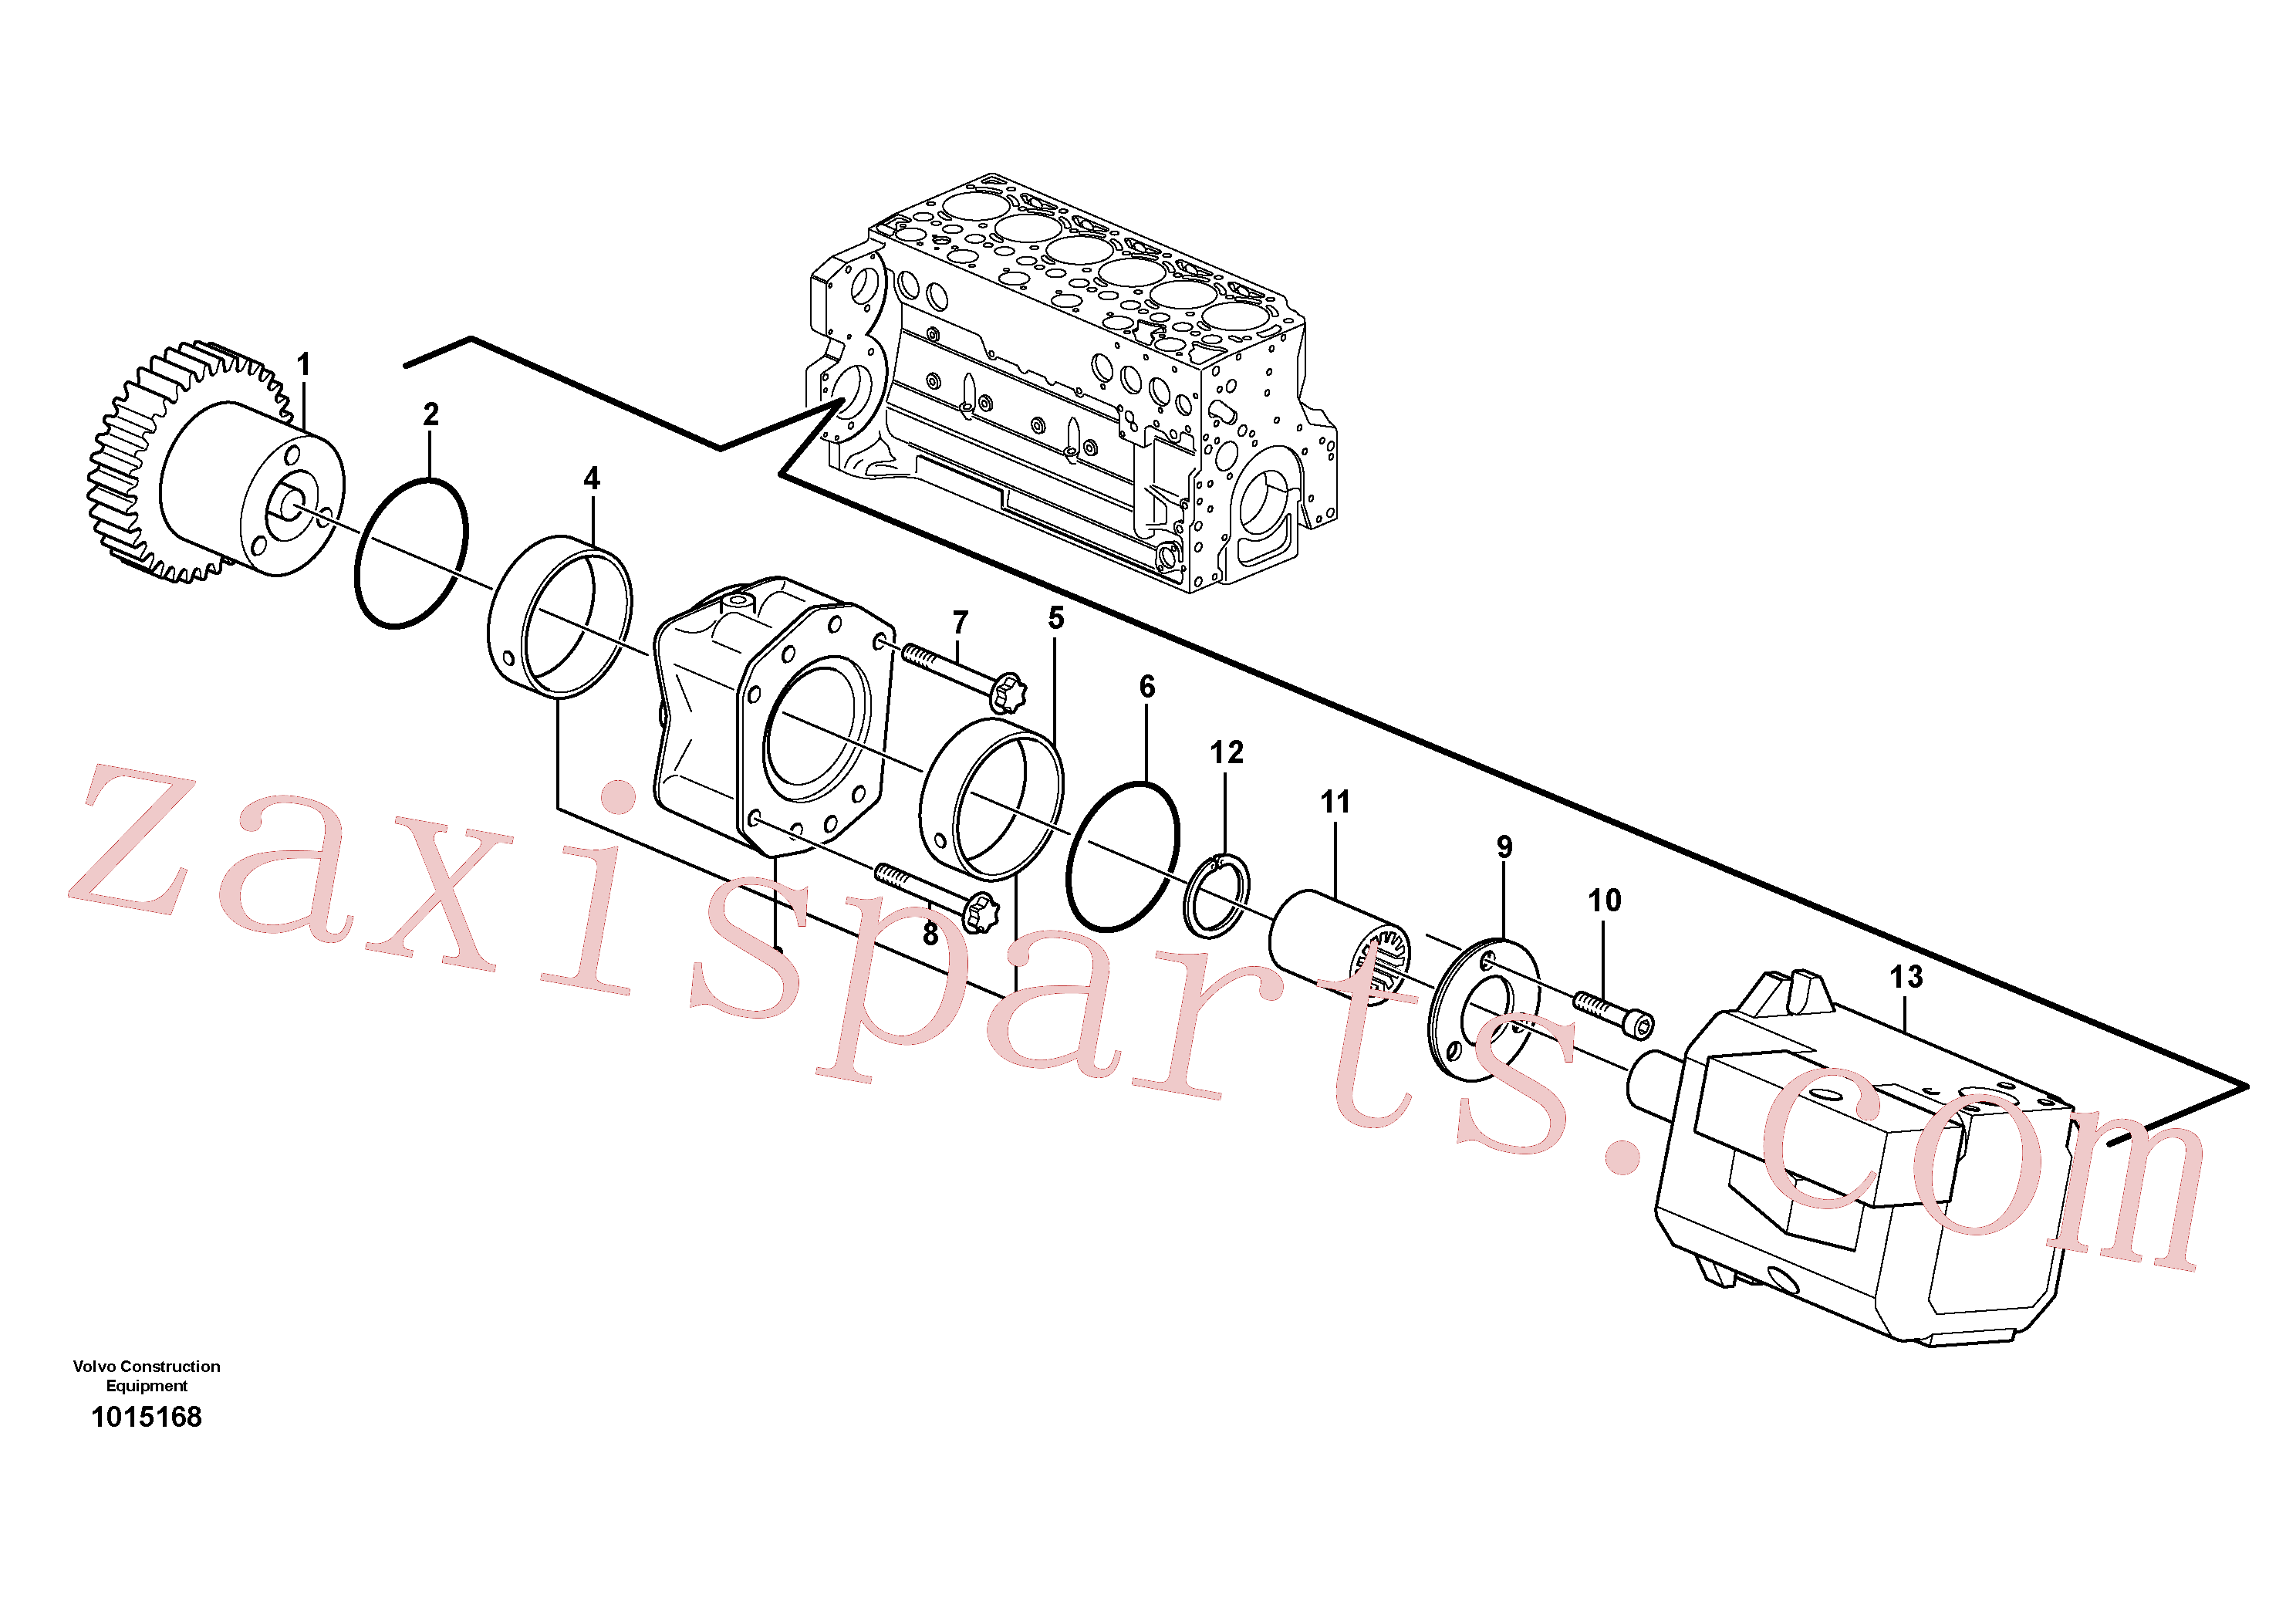 ZM2907358 for Volvo Pump drive power take-off(1015168 assembly)